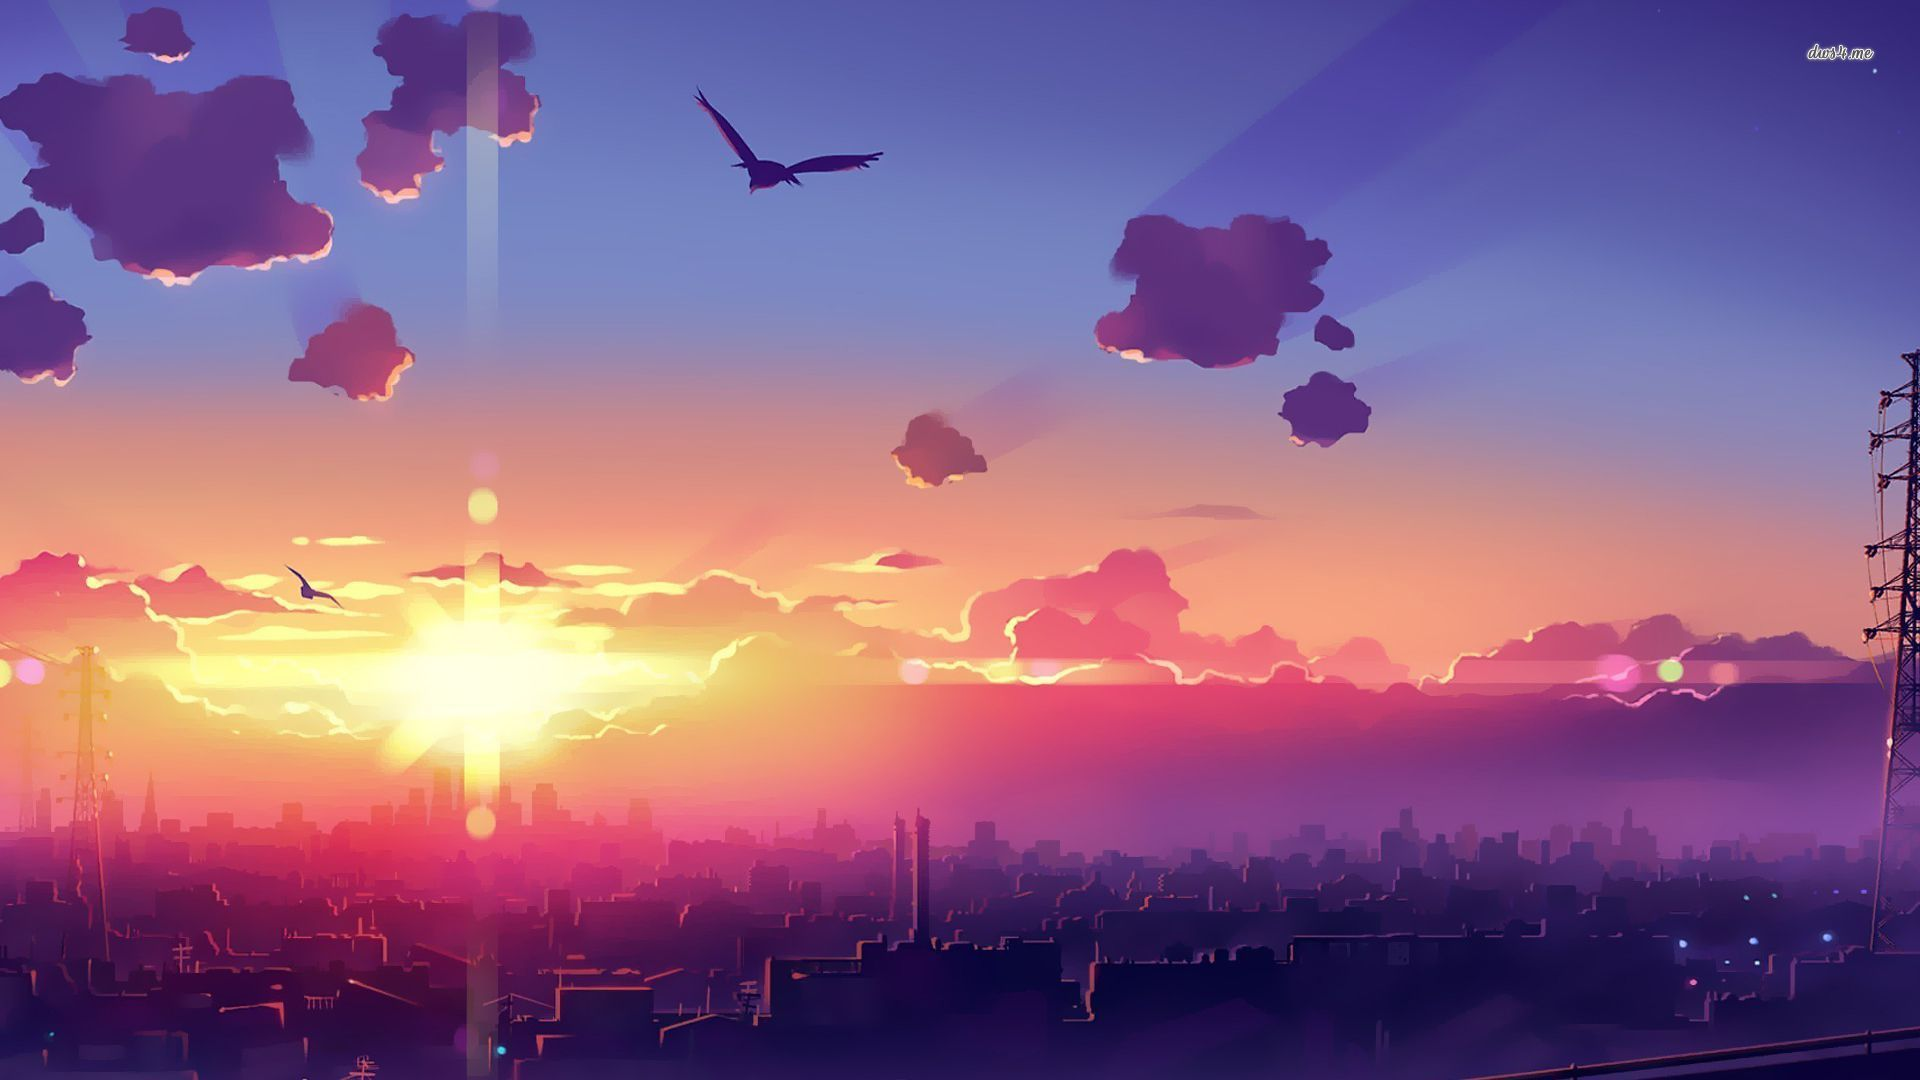 Amazing sunset above the city wallpaper Anime wallpapers